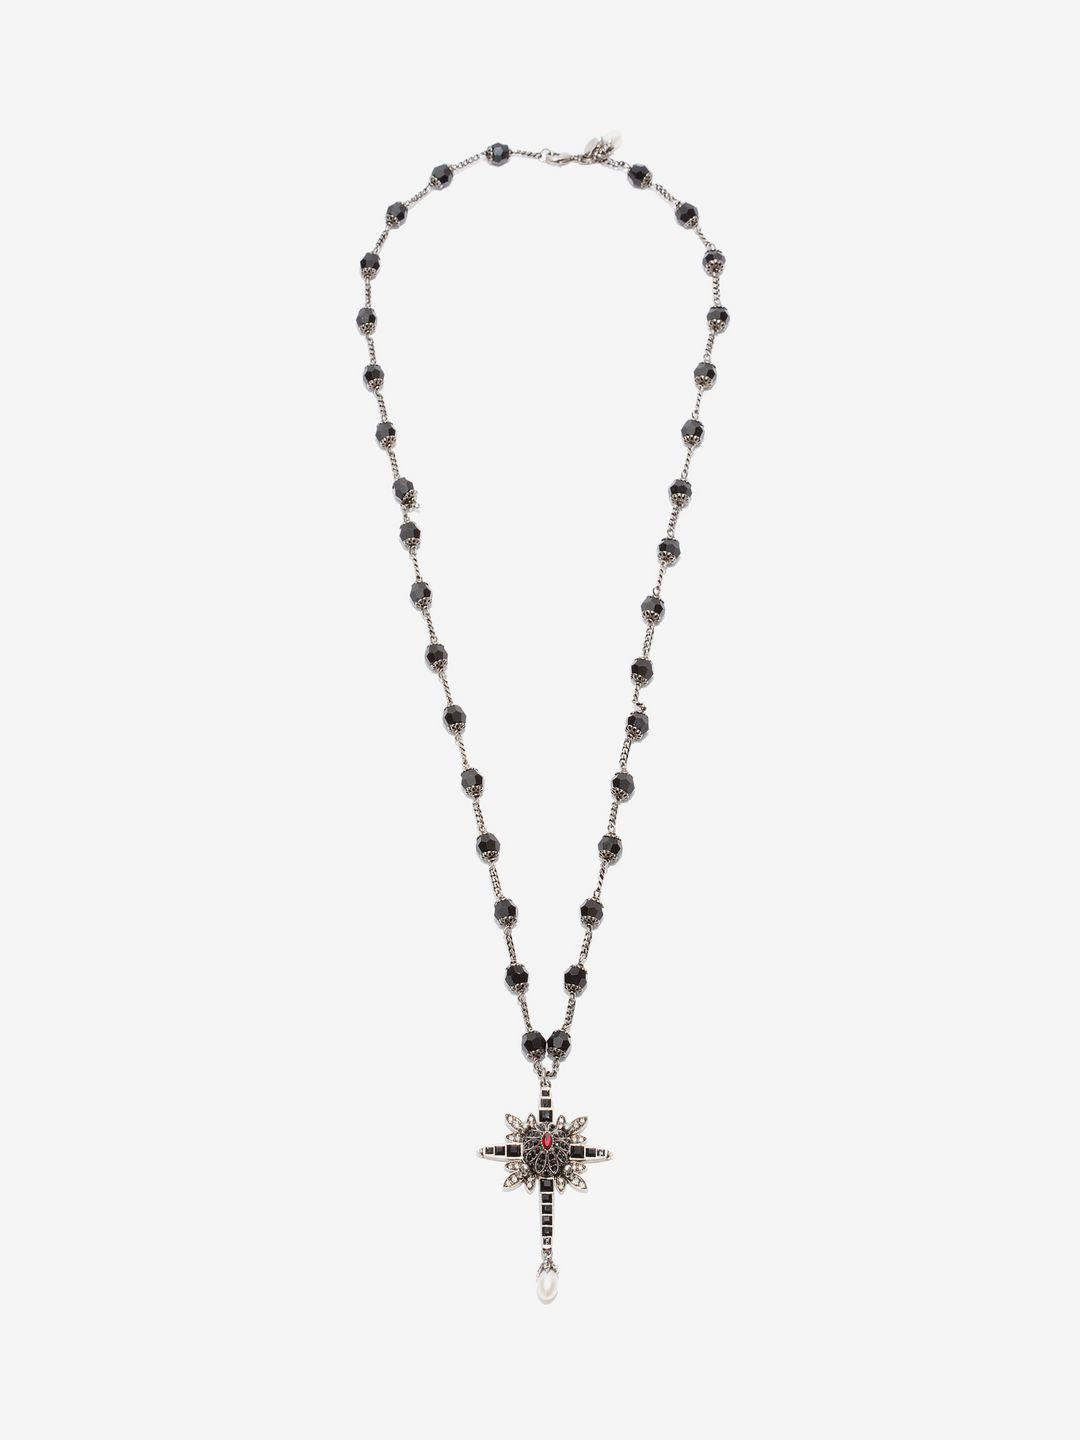 Lyst alexander mcqueen beaded cross necklace in black alexander mcqueen womens black beaded cross necklace aloadofball Choice Image